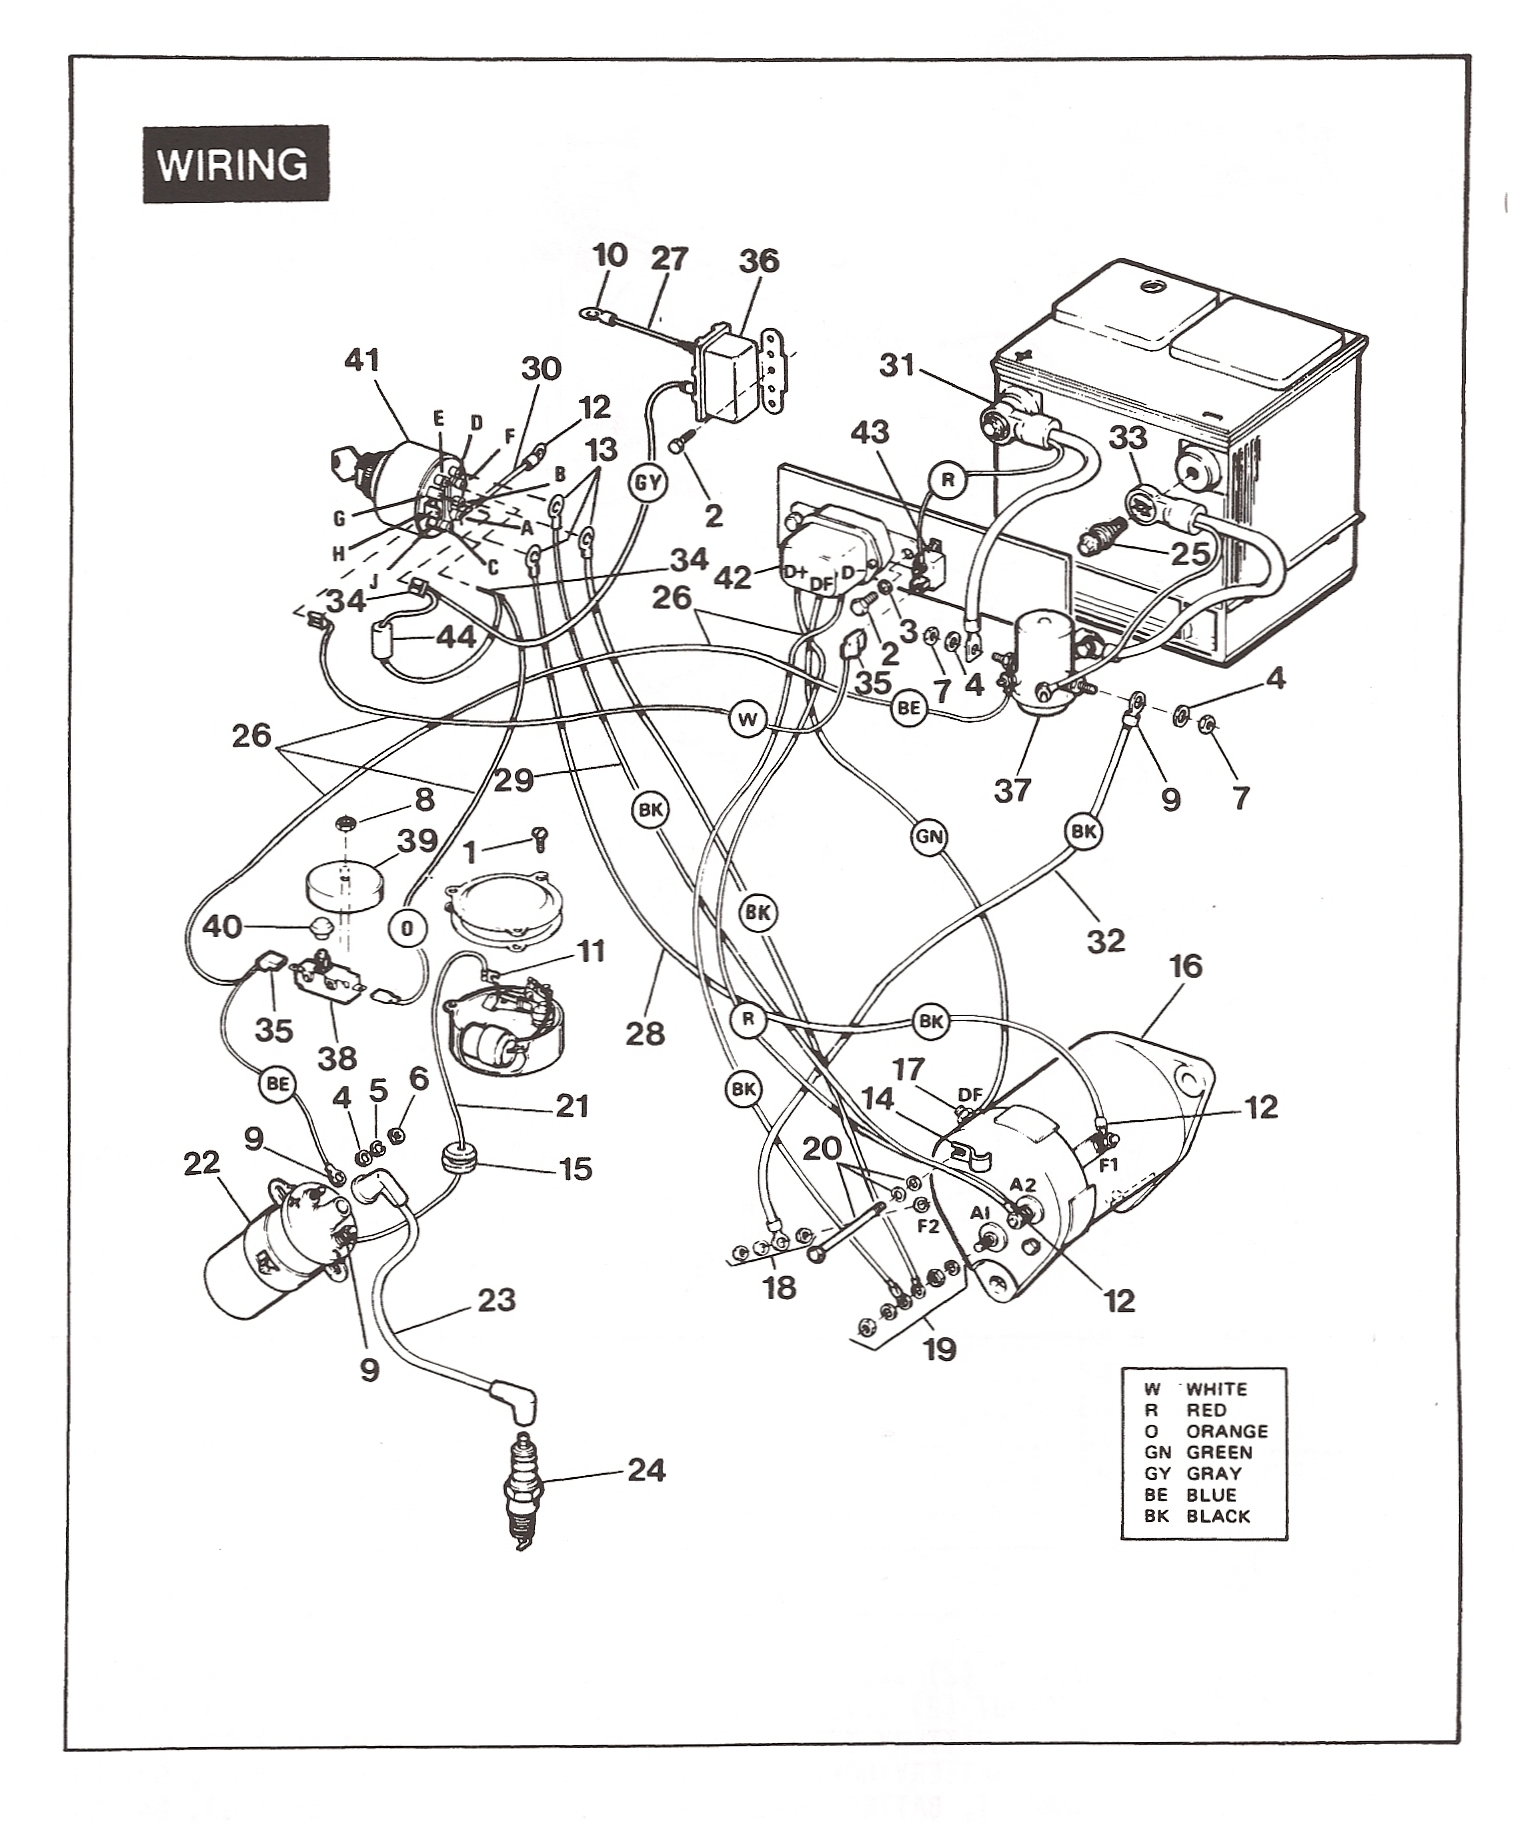 1986 gas club car wiring diagram